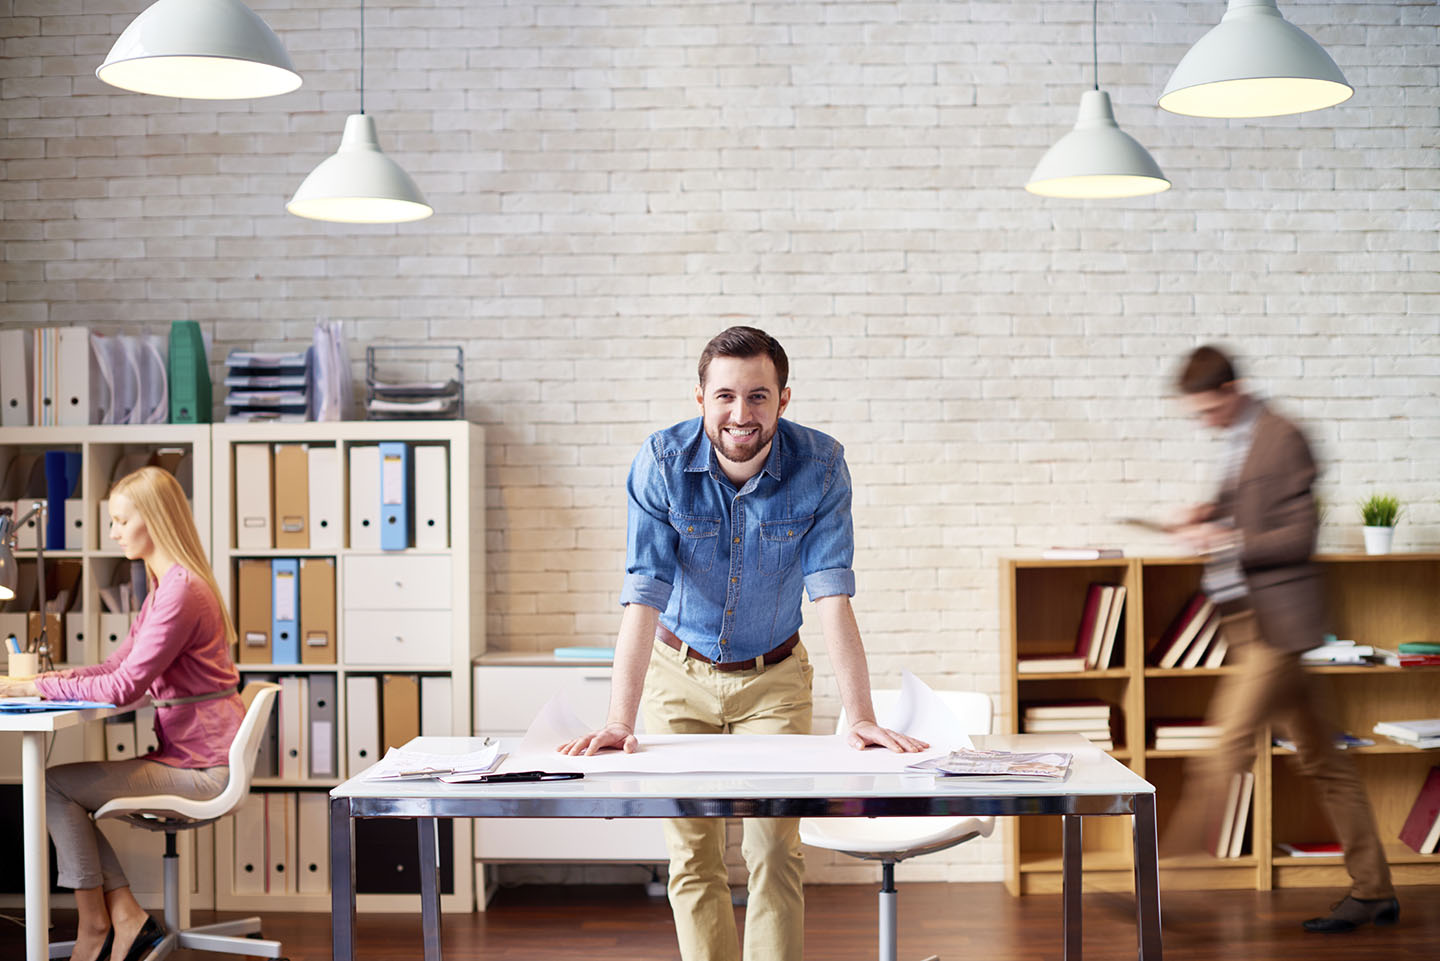 Young designer leaning on table and smiling at camera, his colleagues are busy with work